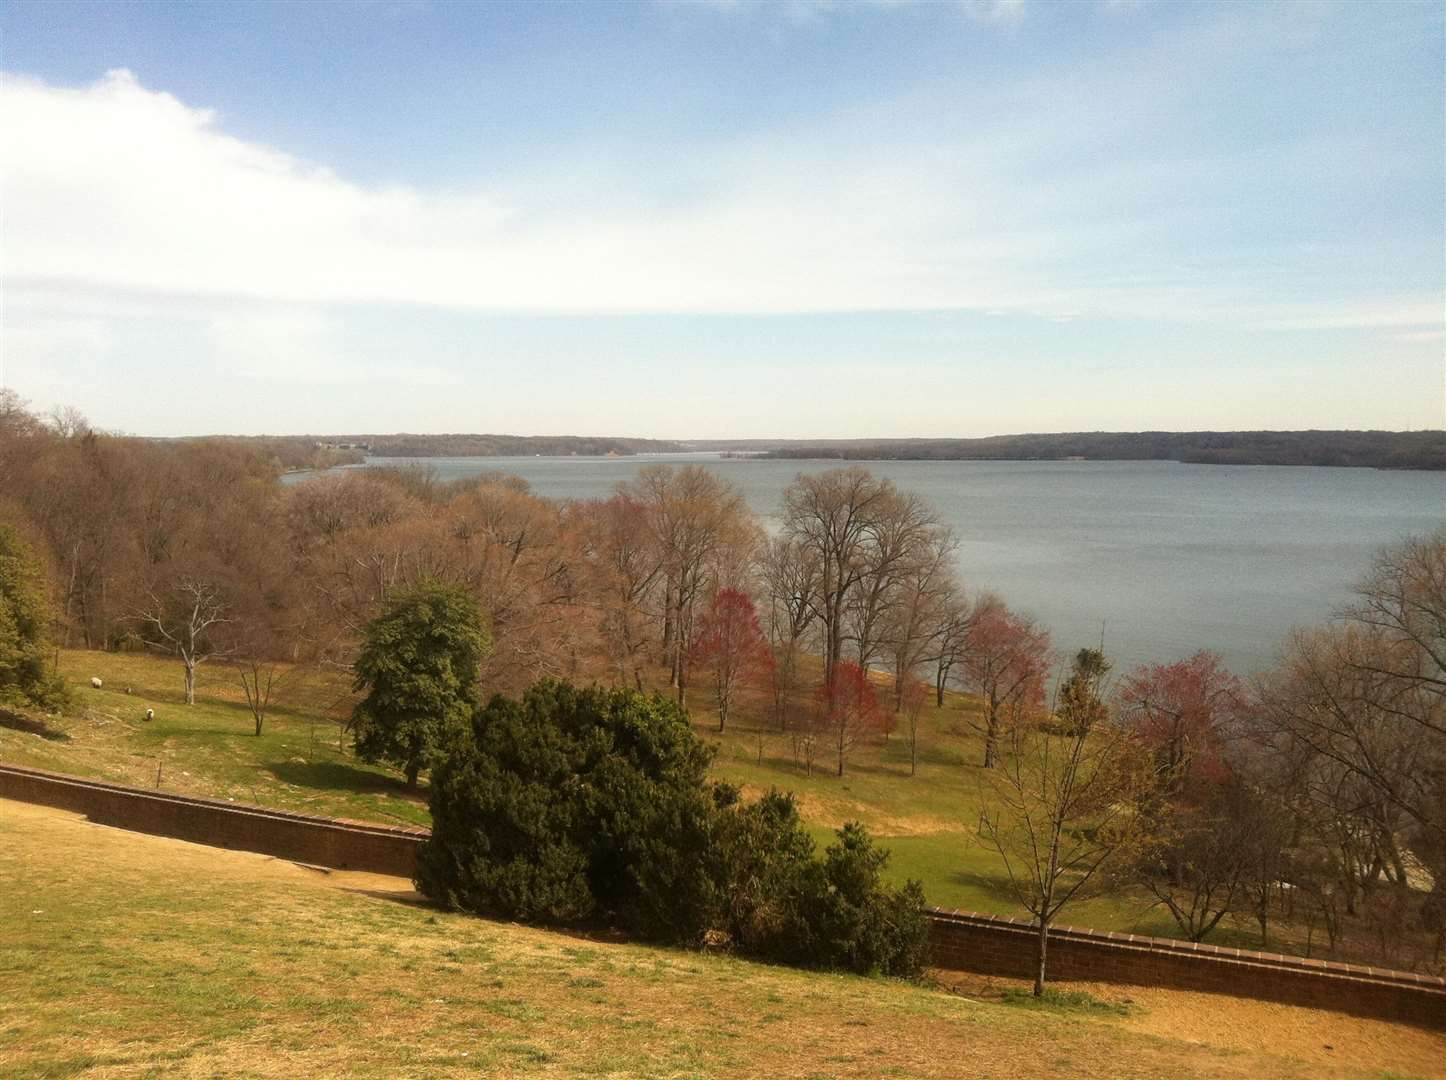 View over the Potomac River in Virginia - the state in which the first English settlement, Jamestown, was built